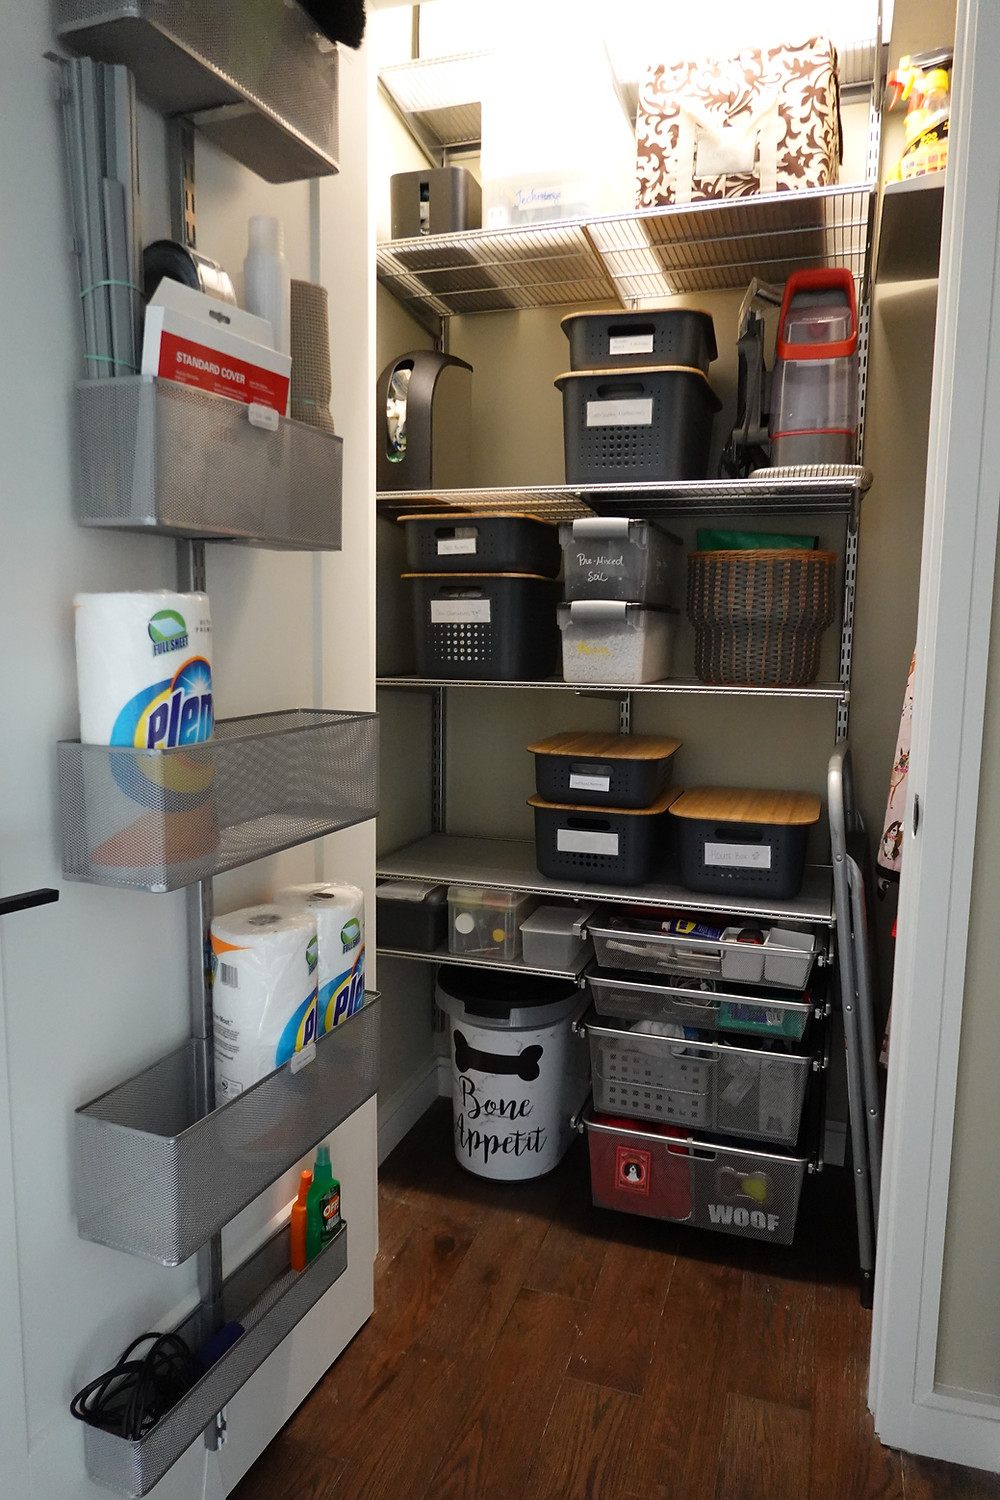 The Elfa Shelving System from The Container Store